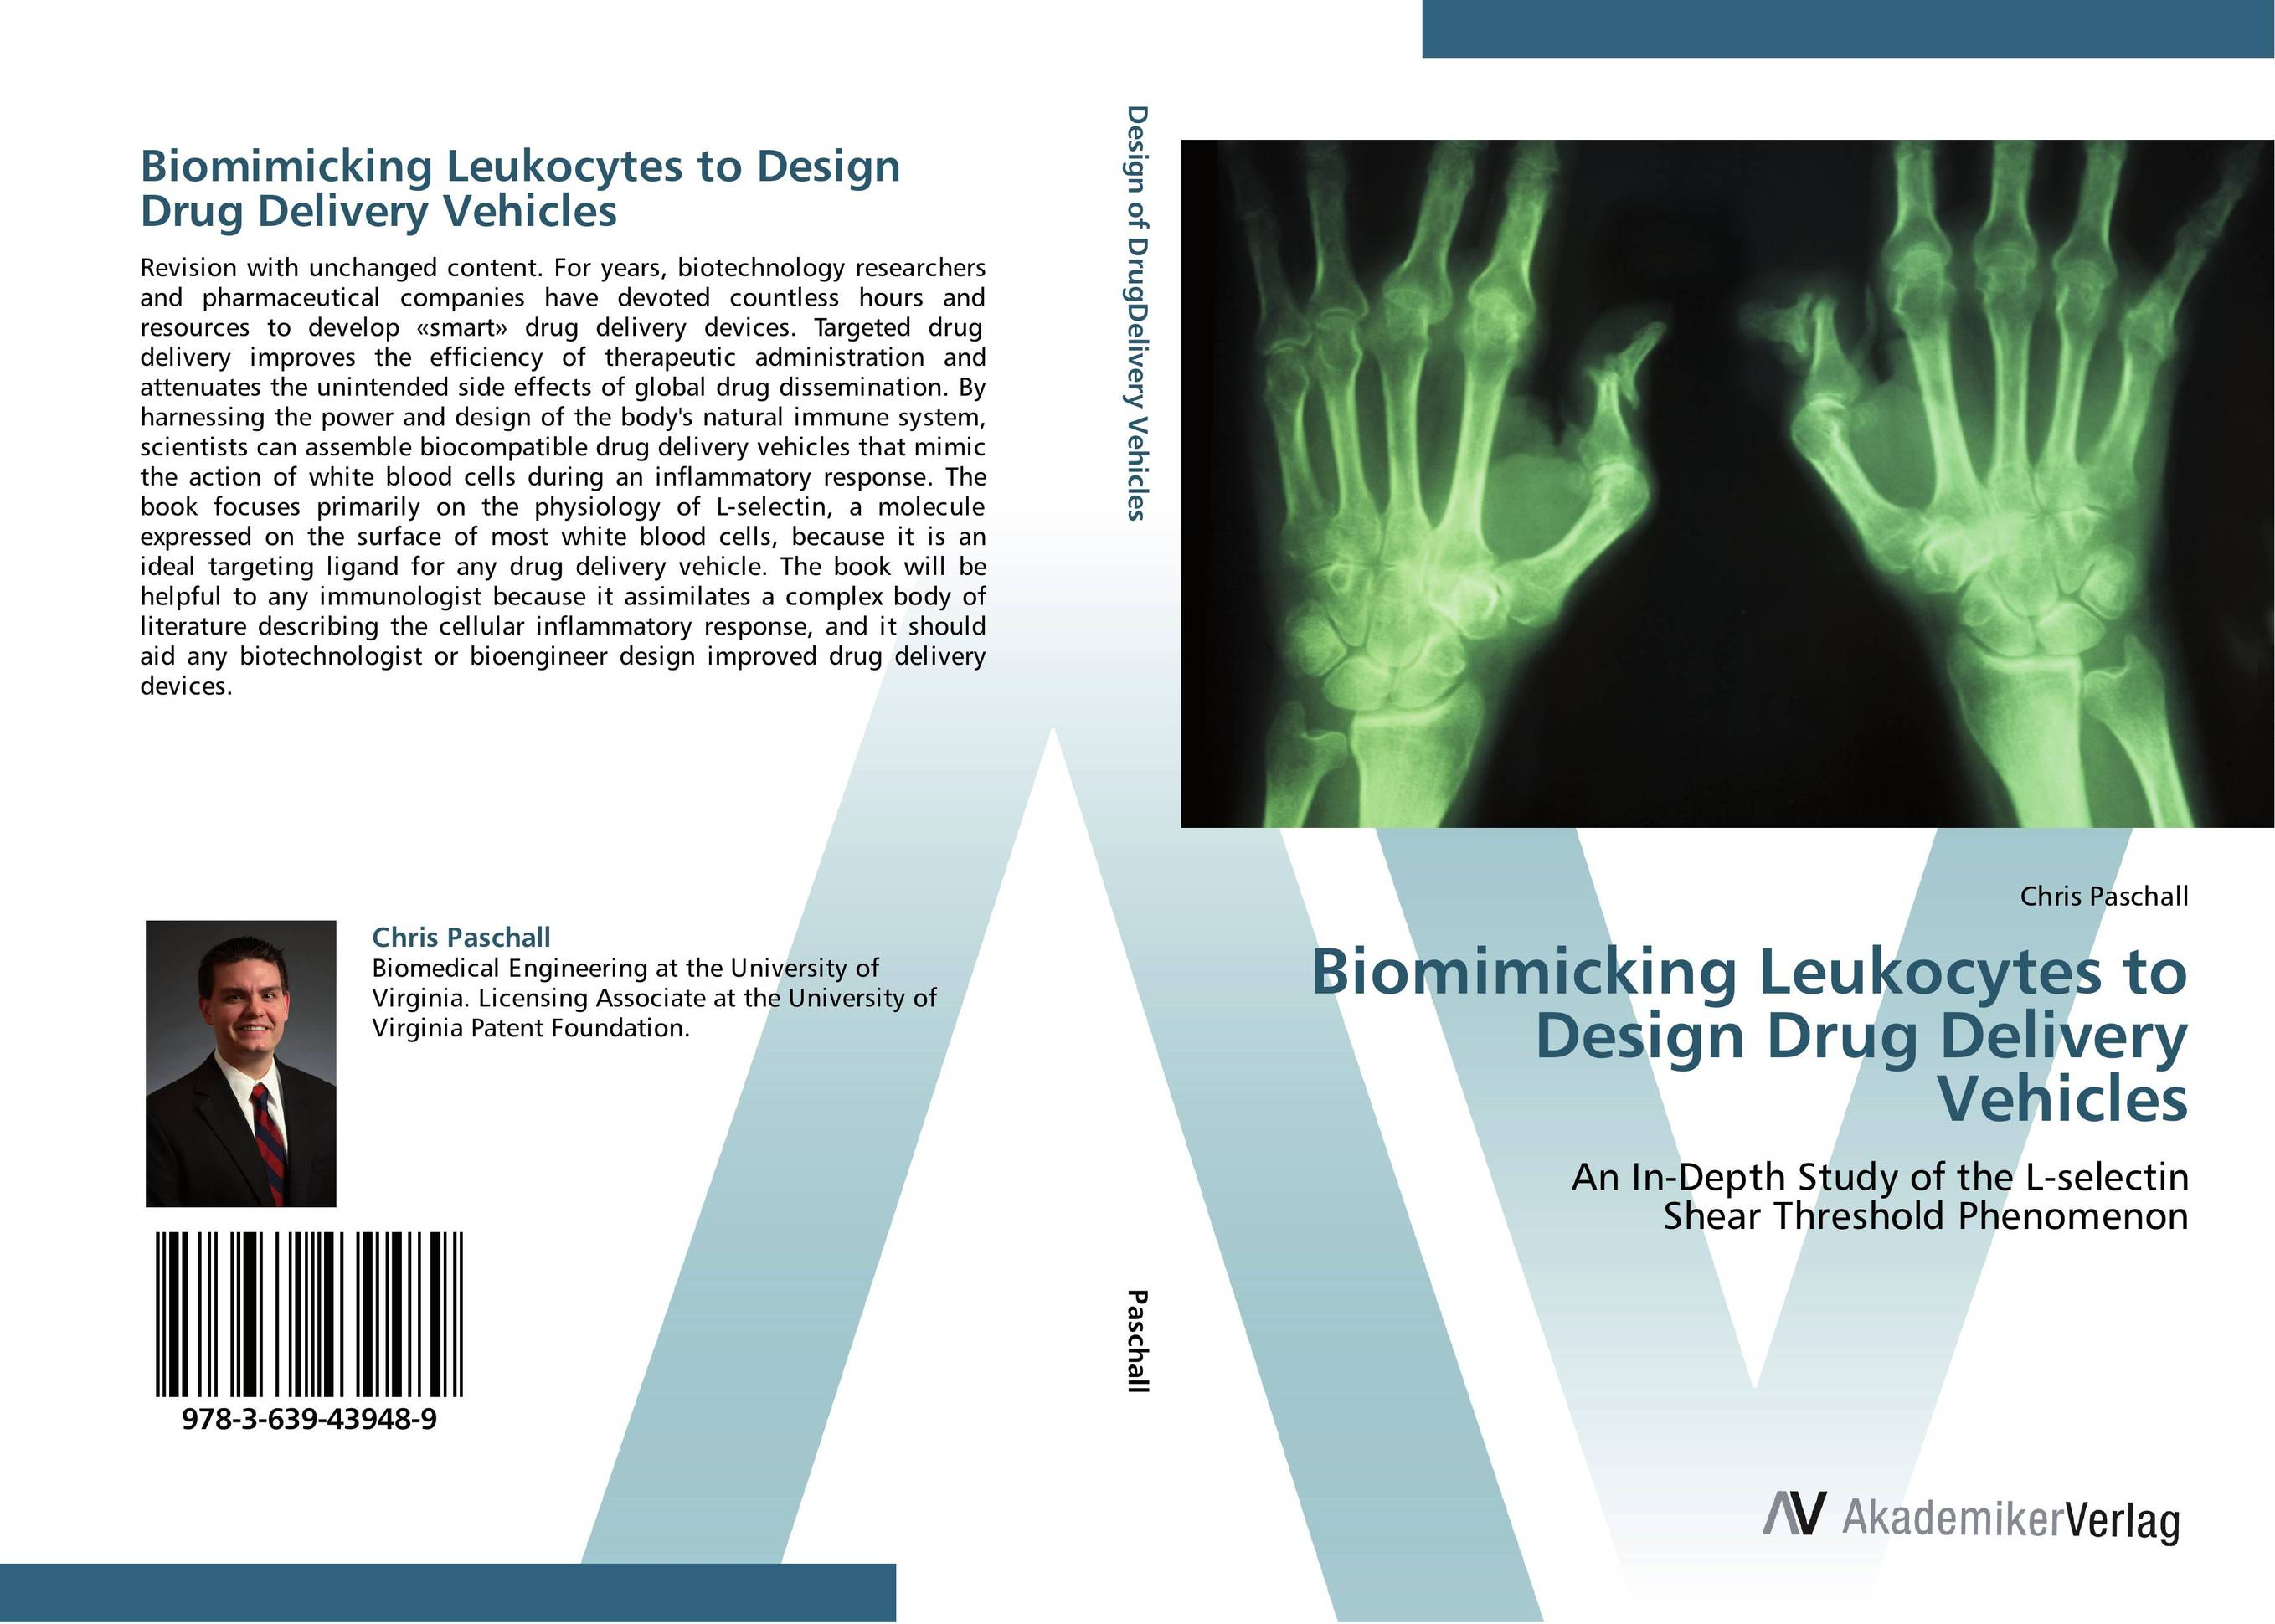 Biomimicking Leukocytes to Design Drug Delivery Vehicles drug discovery and design